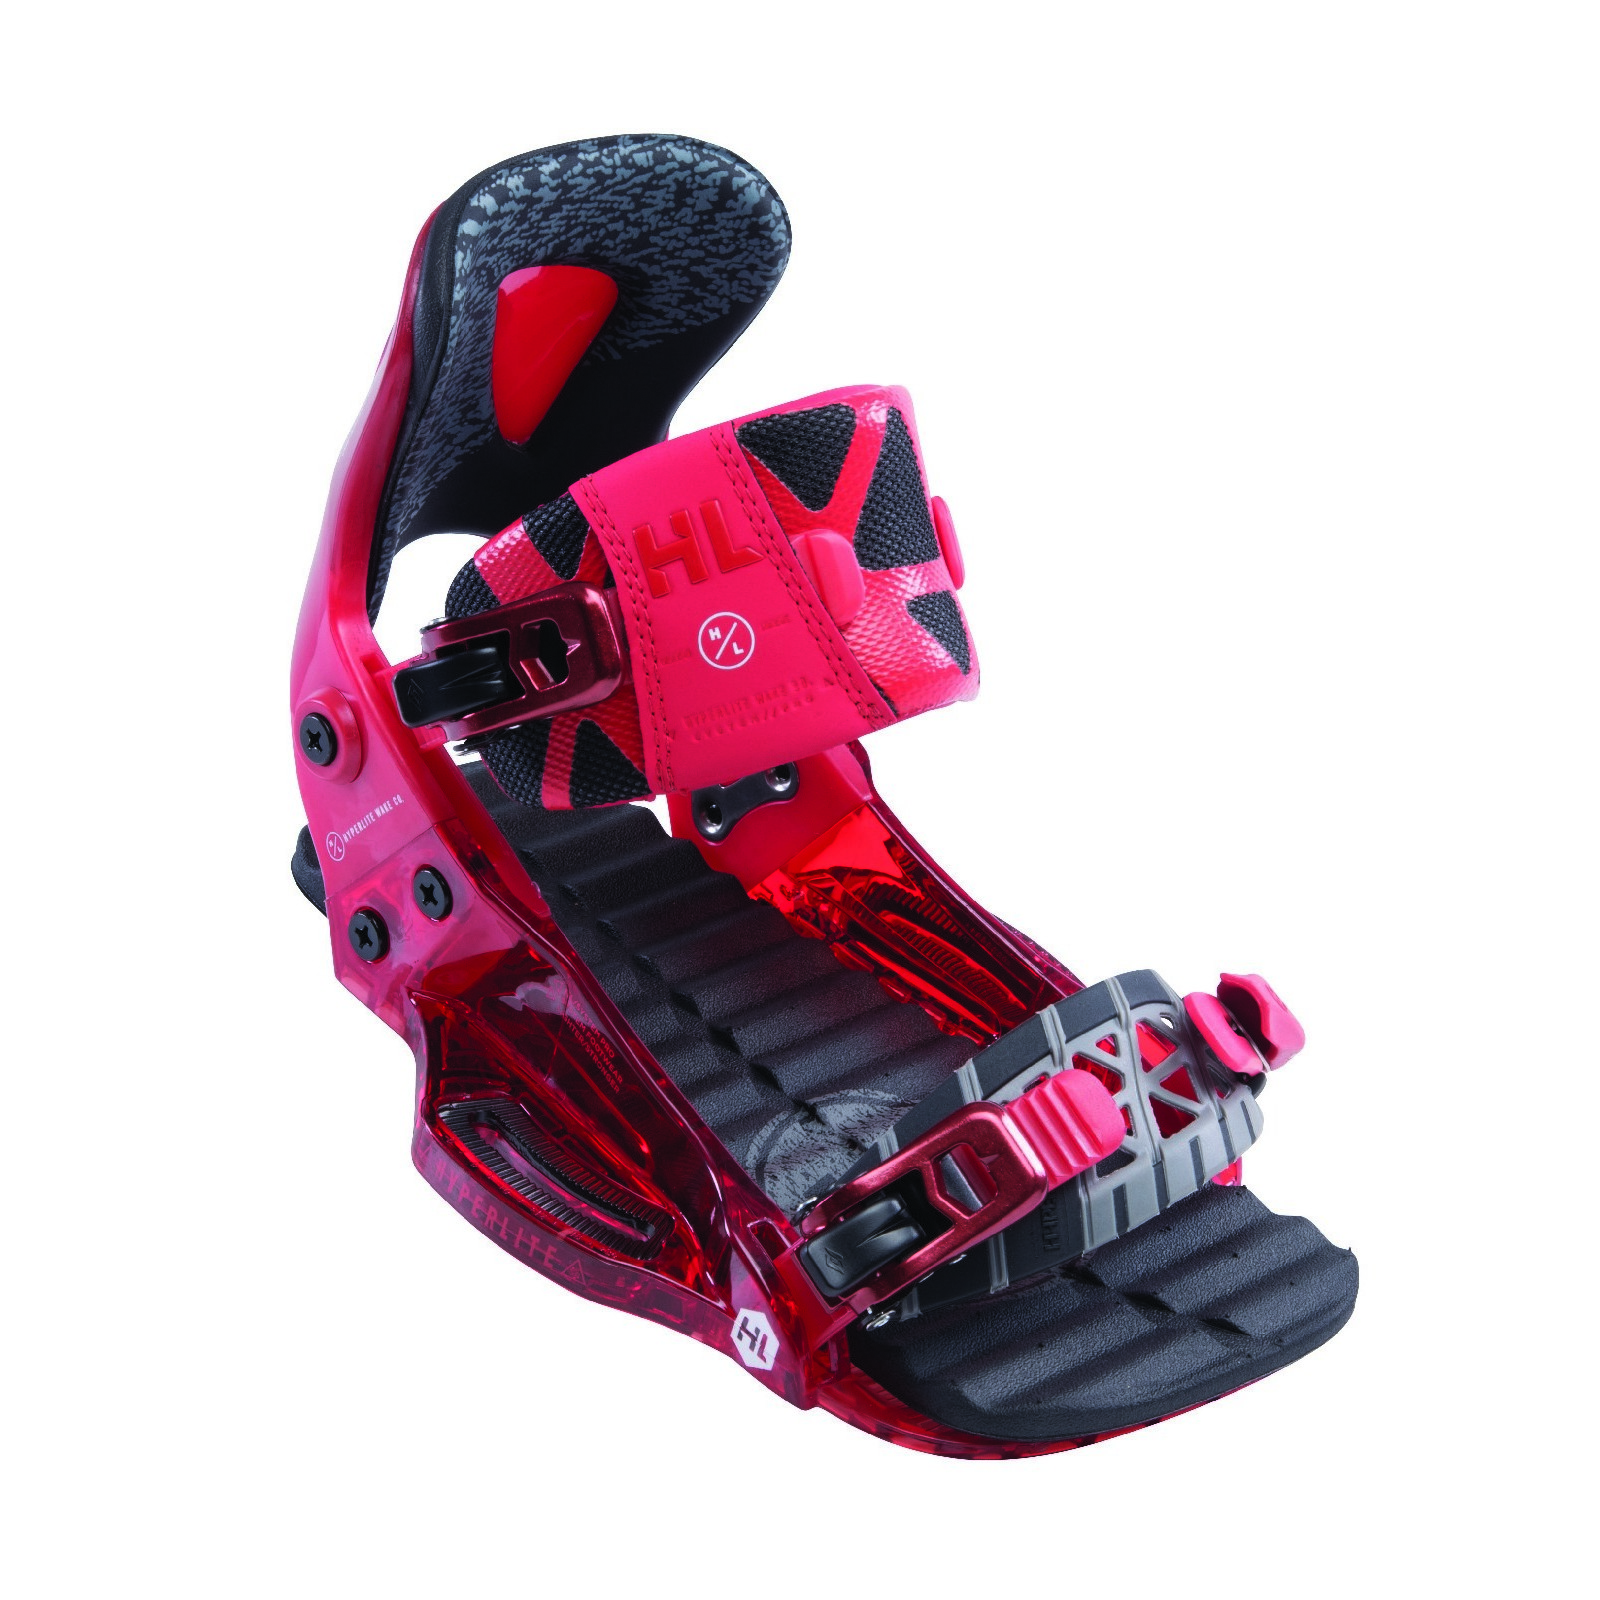 SYSTEM BINDING PRO RED HYPERLITE 2019